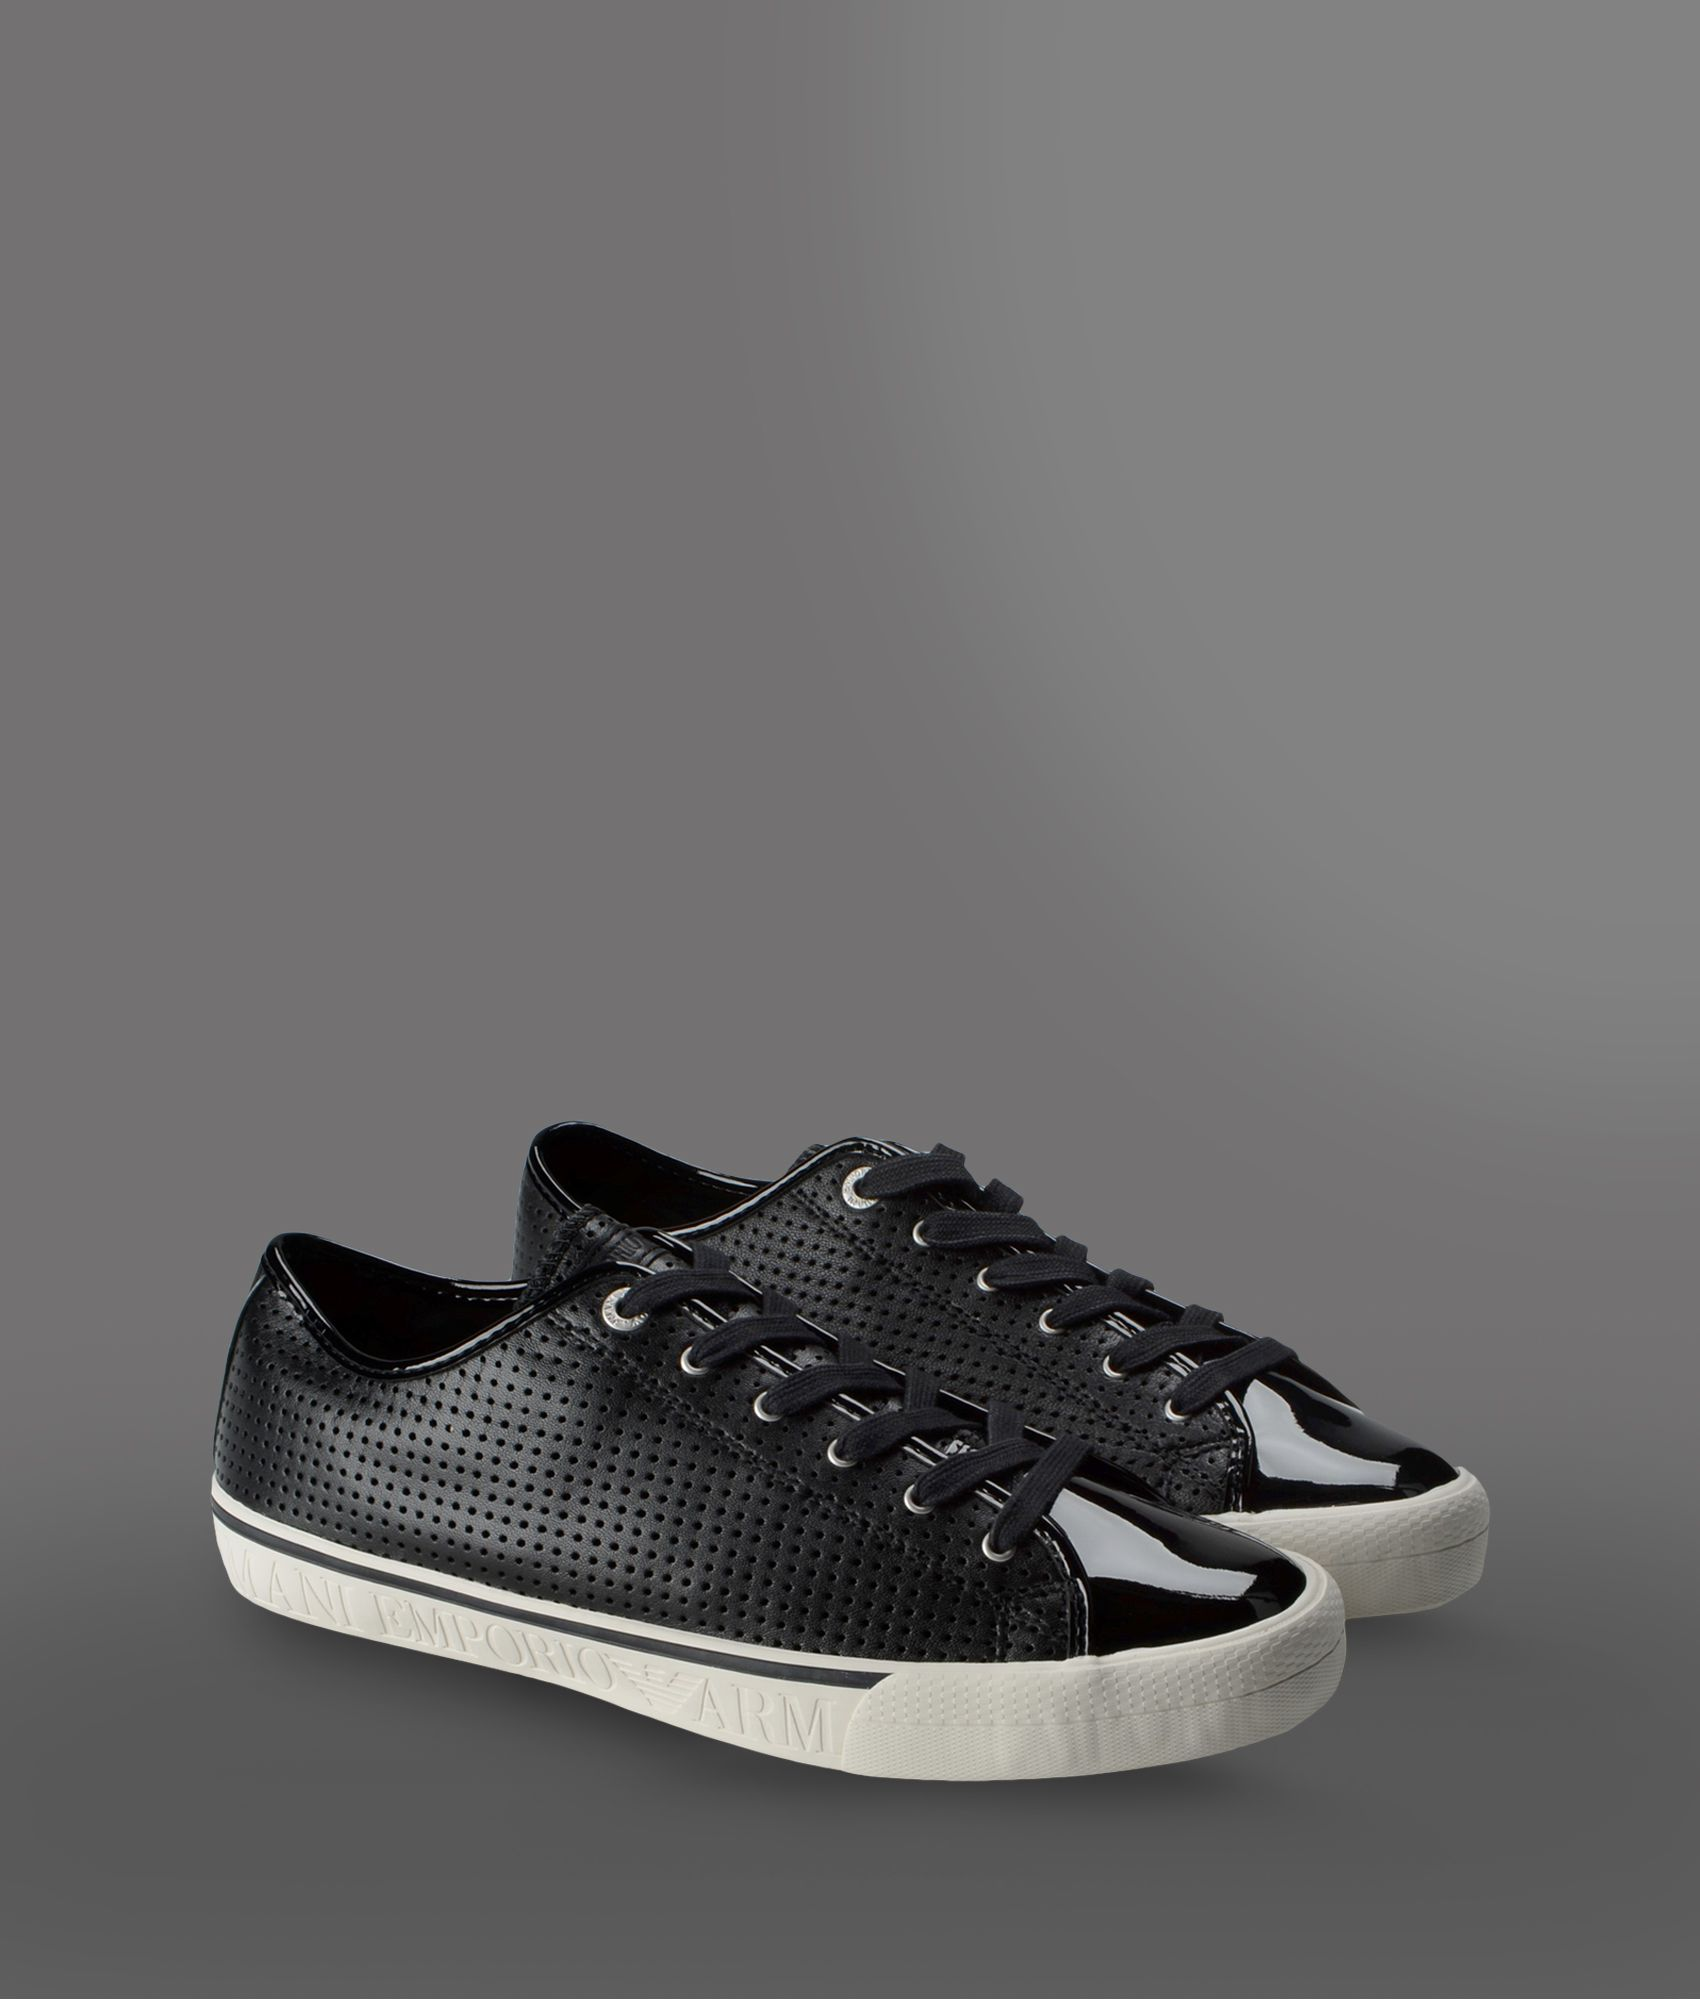 cheap shop for Emporio Armani low-top sneakers footlocker cheap online free shipping 100% authentic edEXN7VS4x